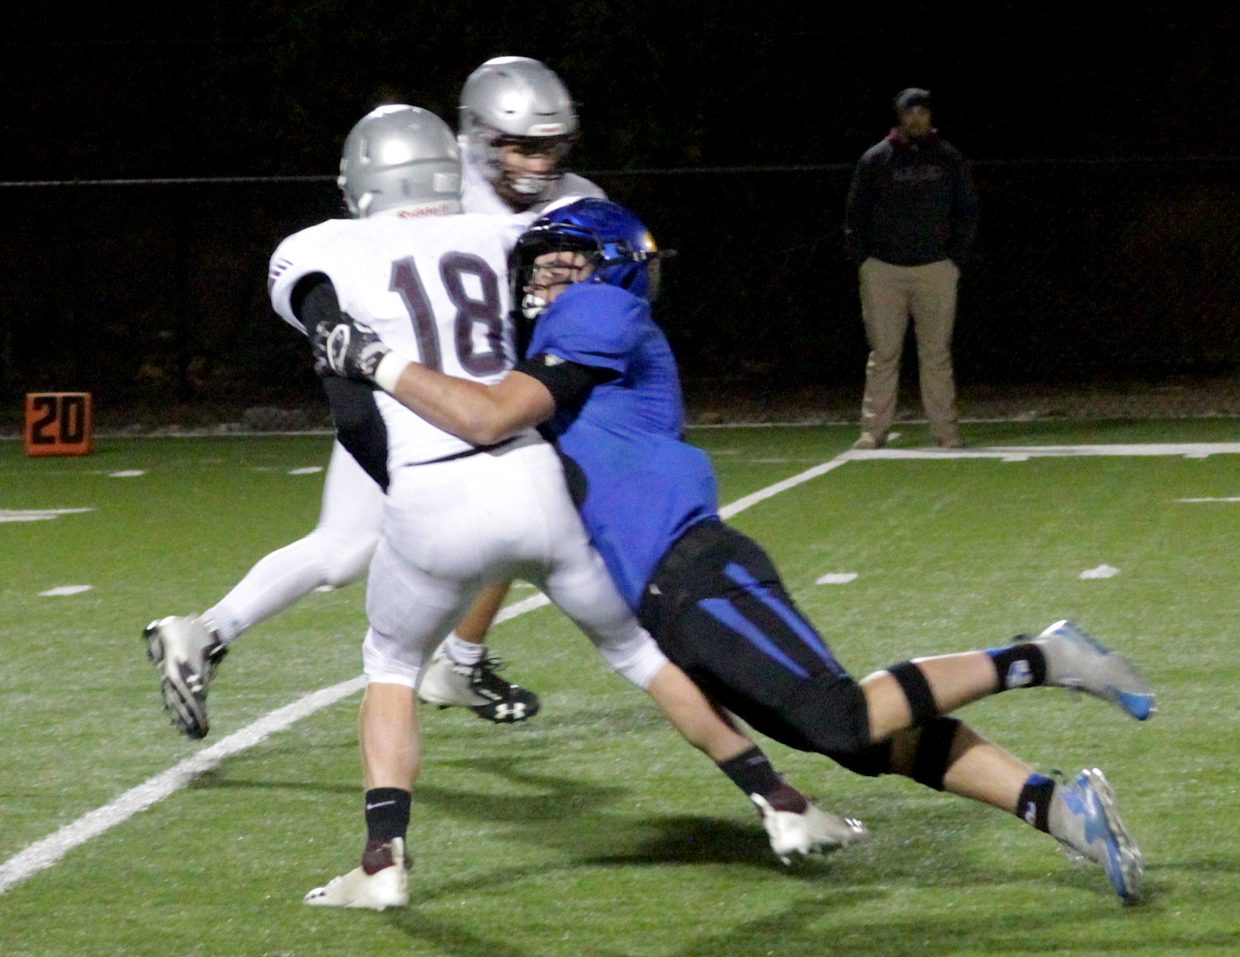 South Tahoe senior linebacker Austin Rhodes smashes Dayton quarterback Justin Schmidt right after he releases the ball.